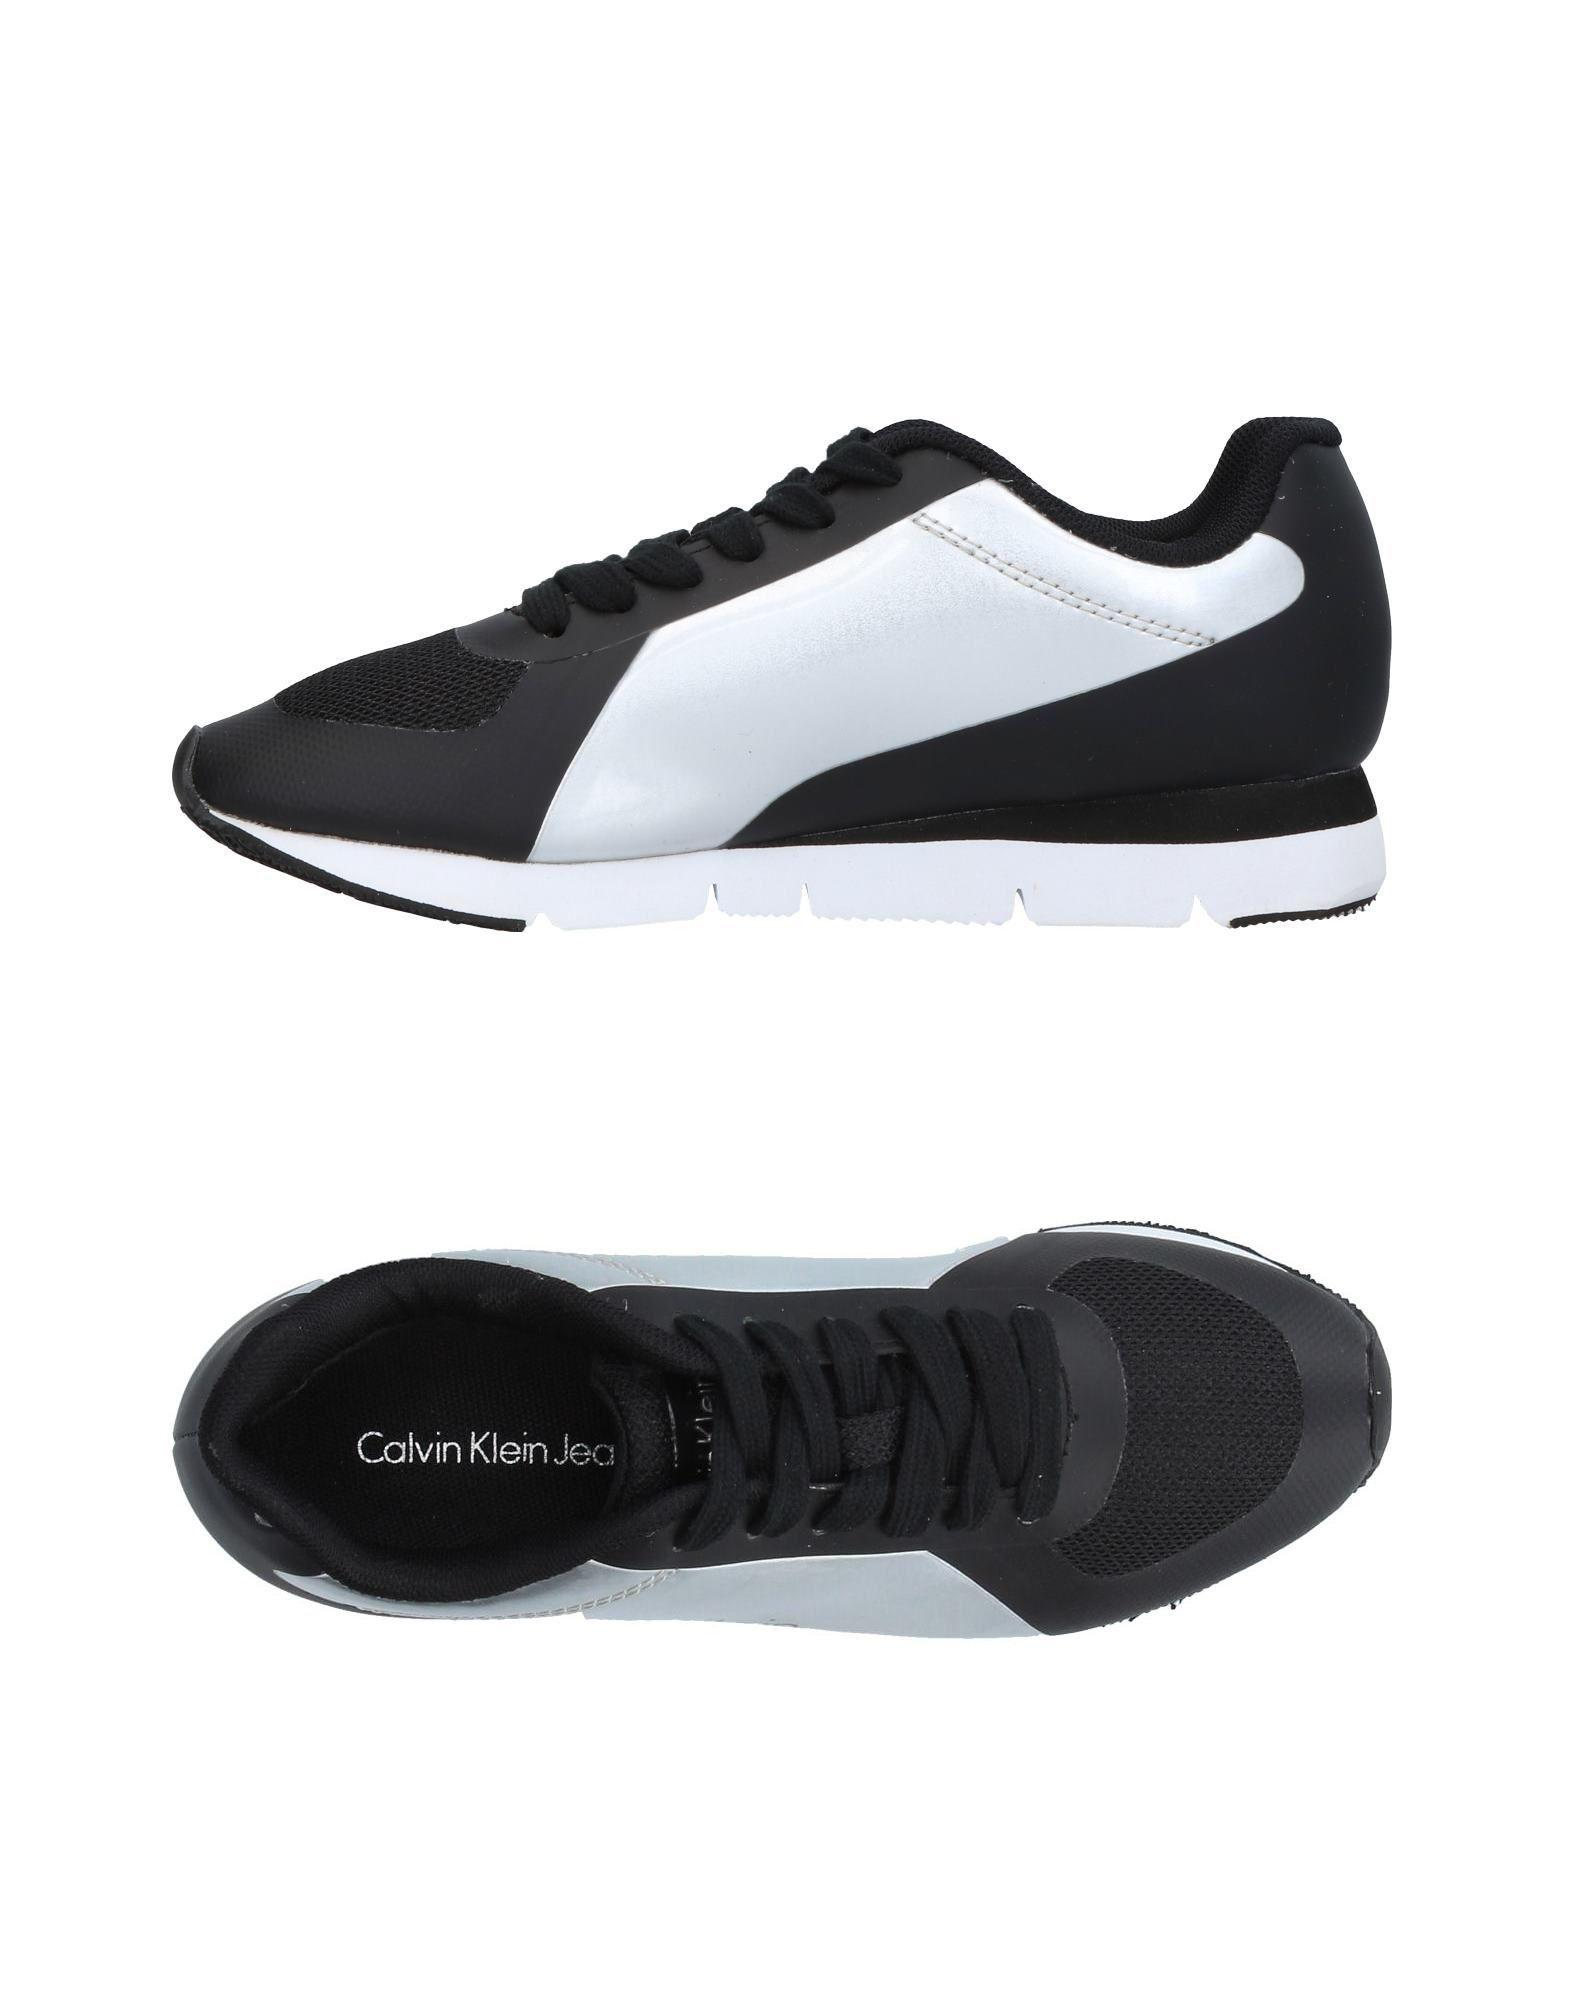 calvin klein jeans sneakers in black modesens. Black Bedroom Furniture Sets. Home Design Ideas